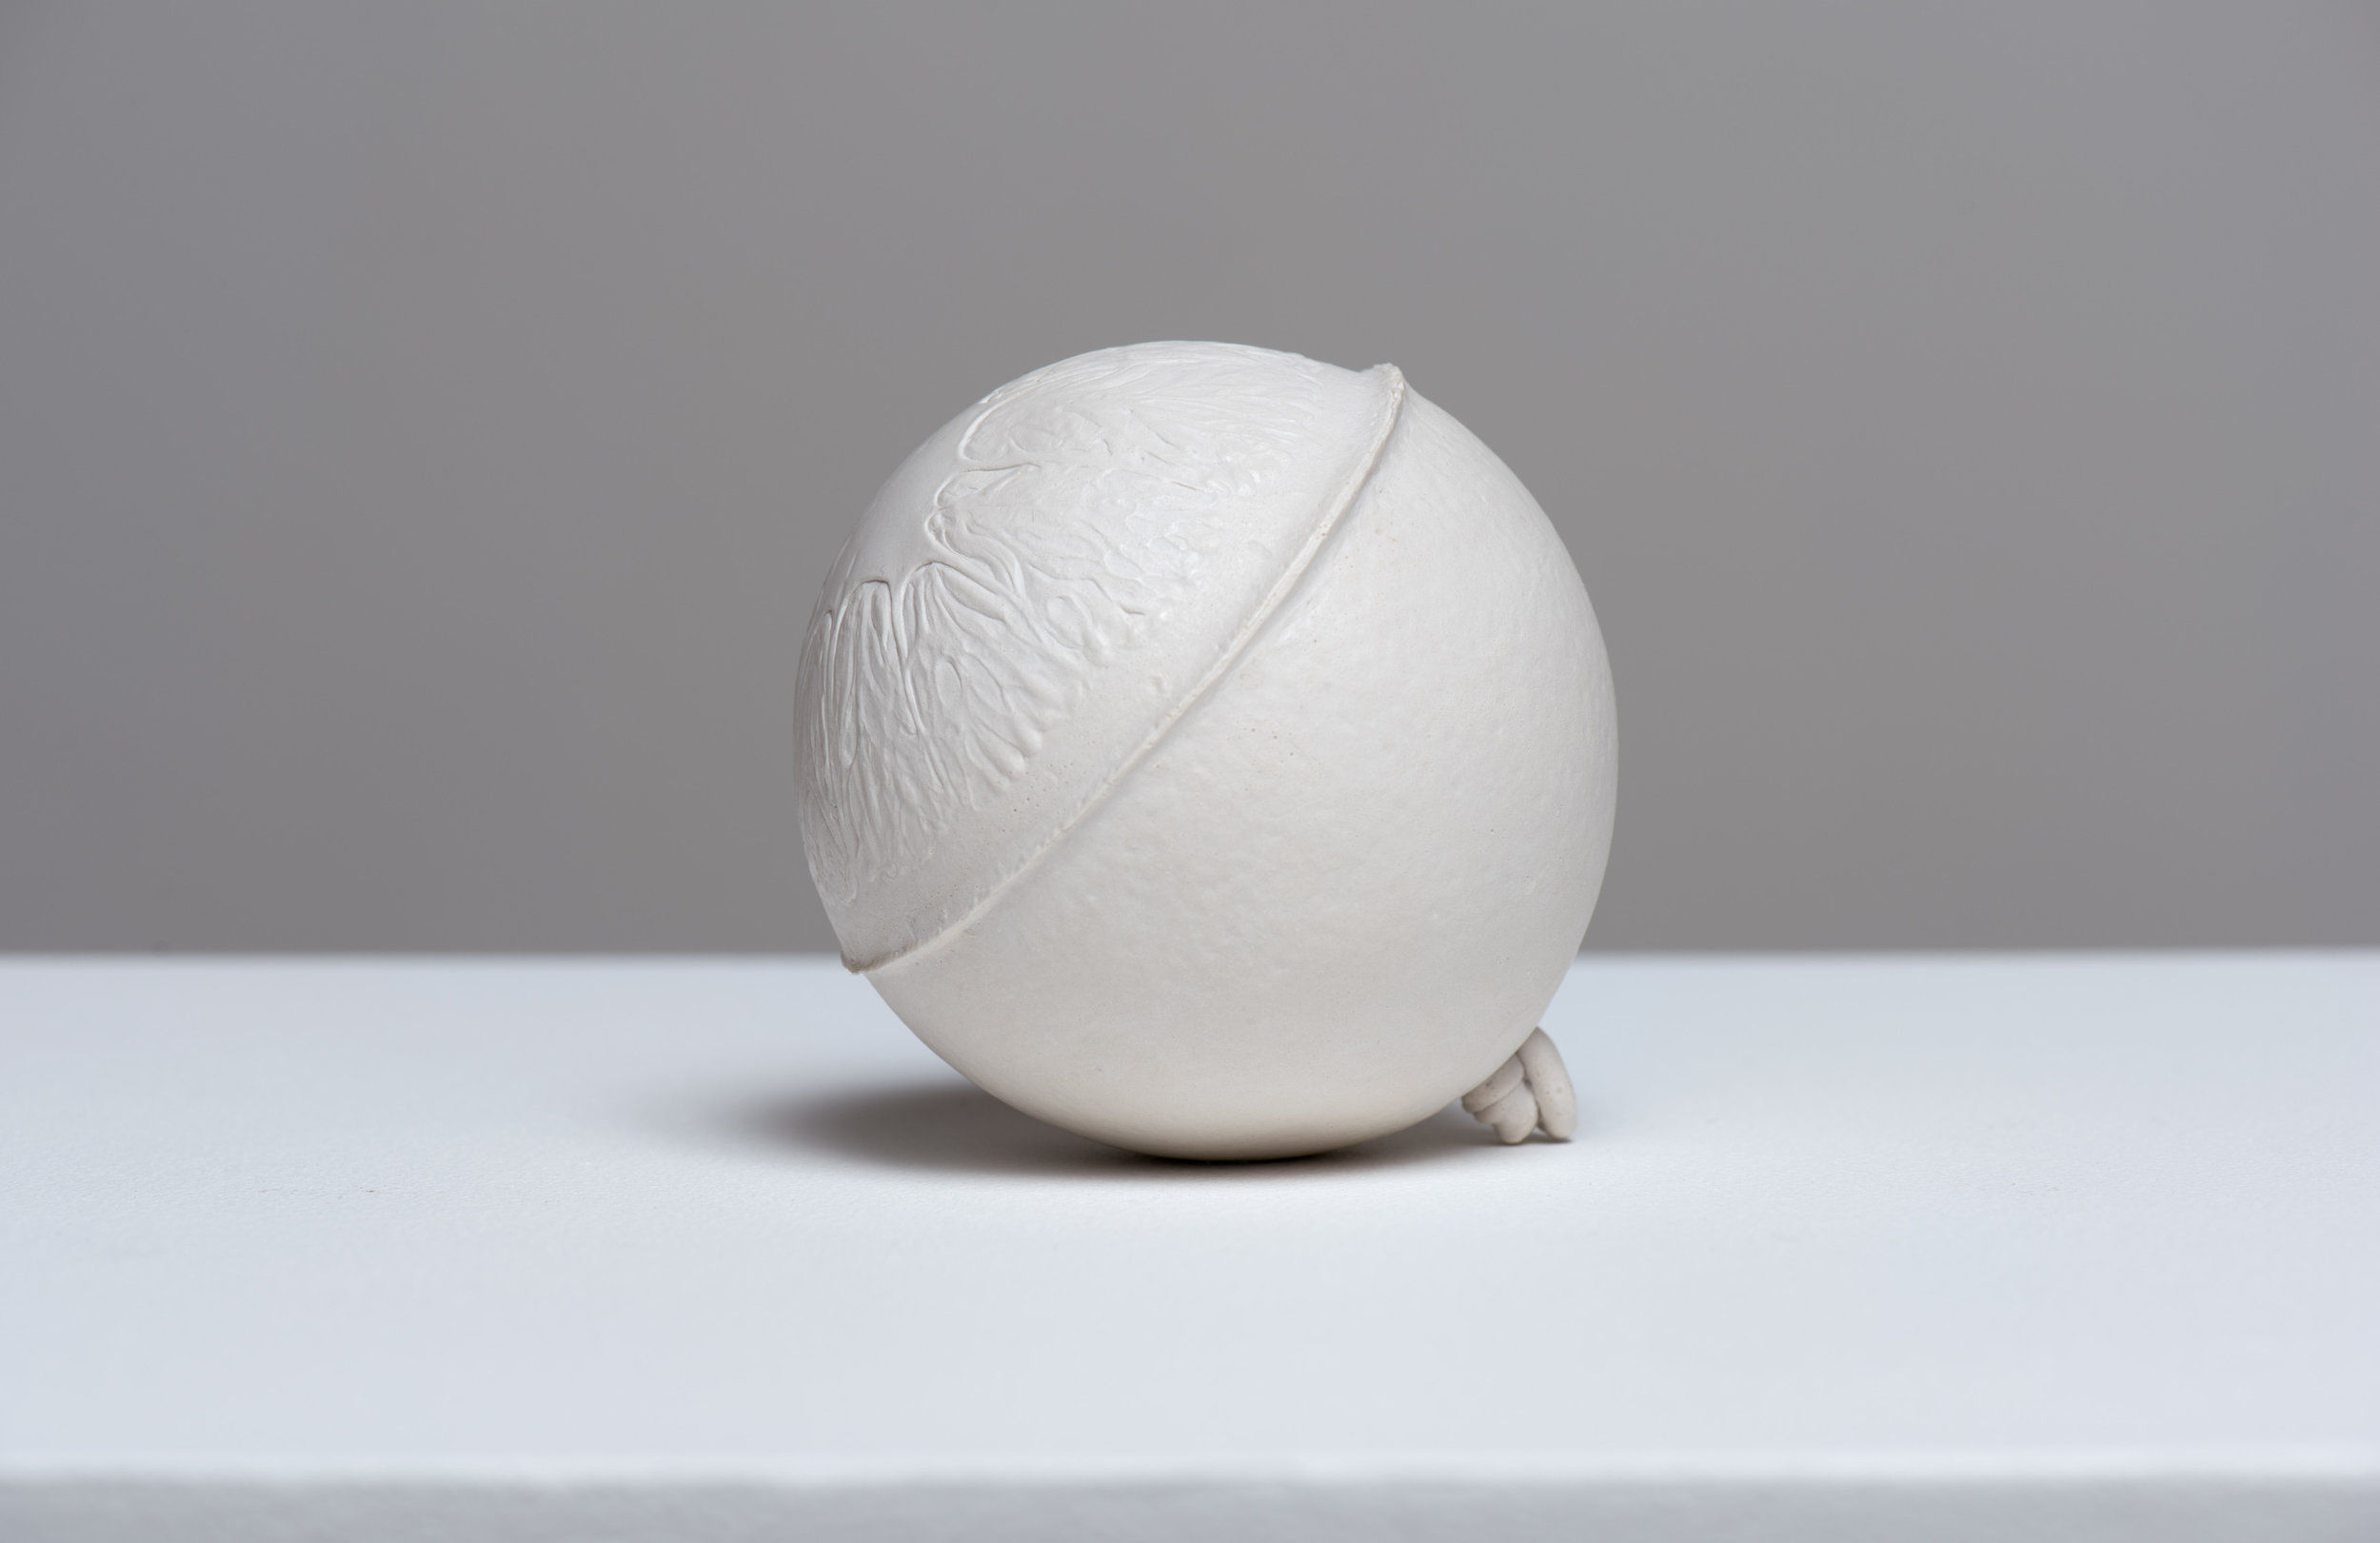 SIDE VIEW  Navel , 2017 Gypsum cement, and porcelain dust 3 1/2 inches (round)